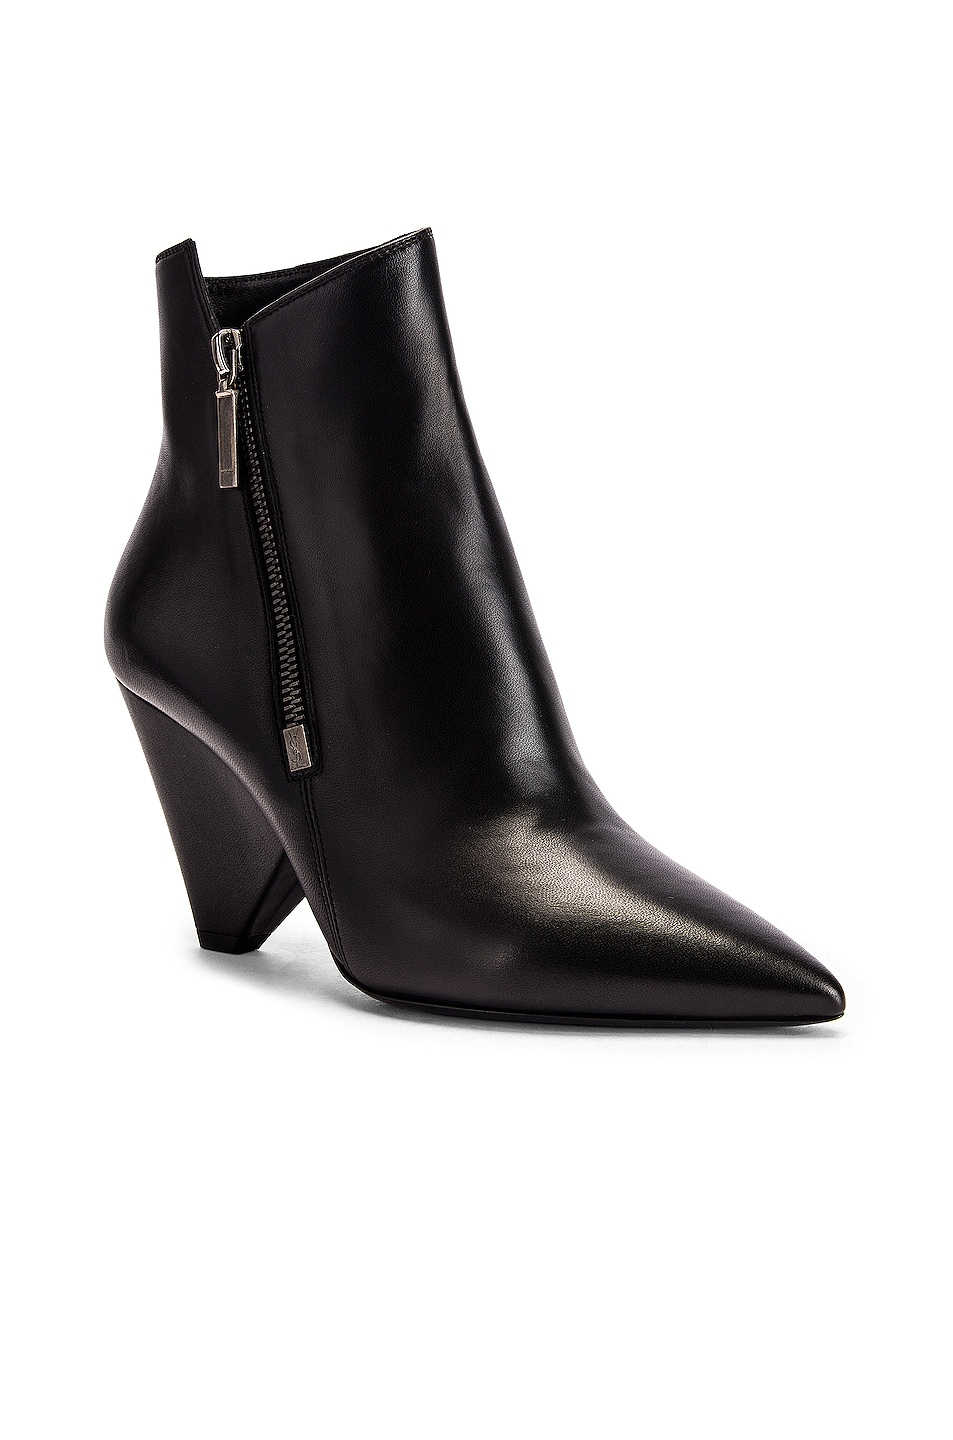 Image 2 of Saint Laurent Niki Zip Booties in Black